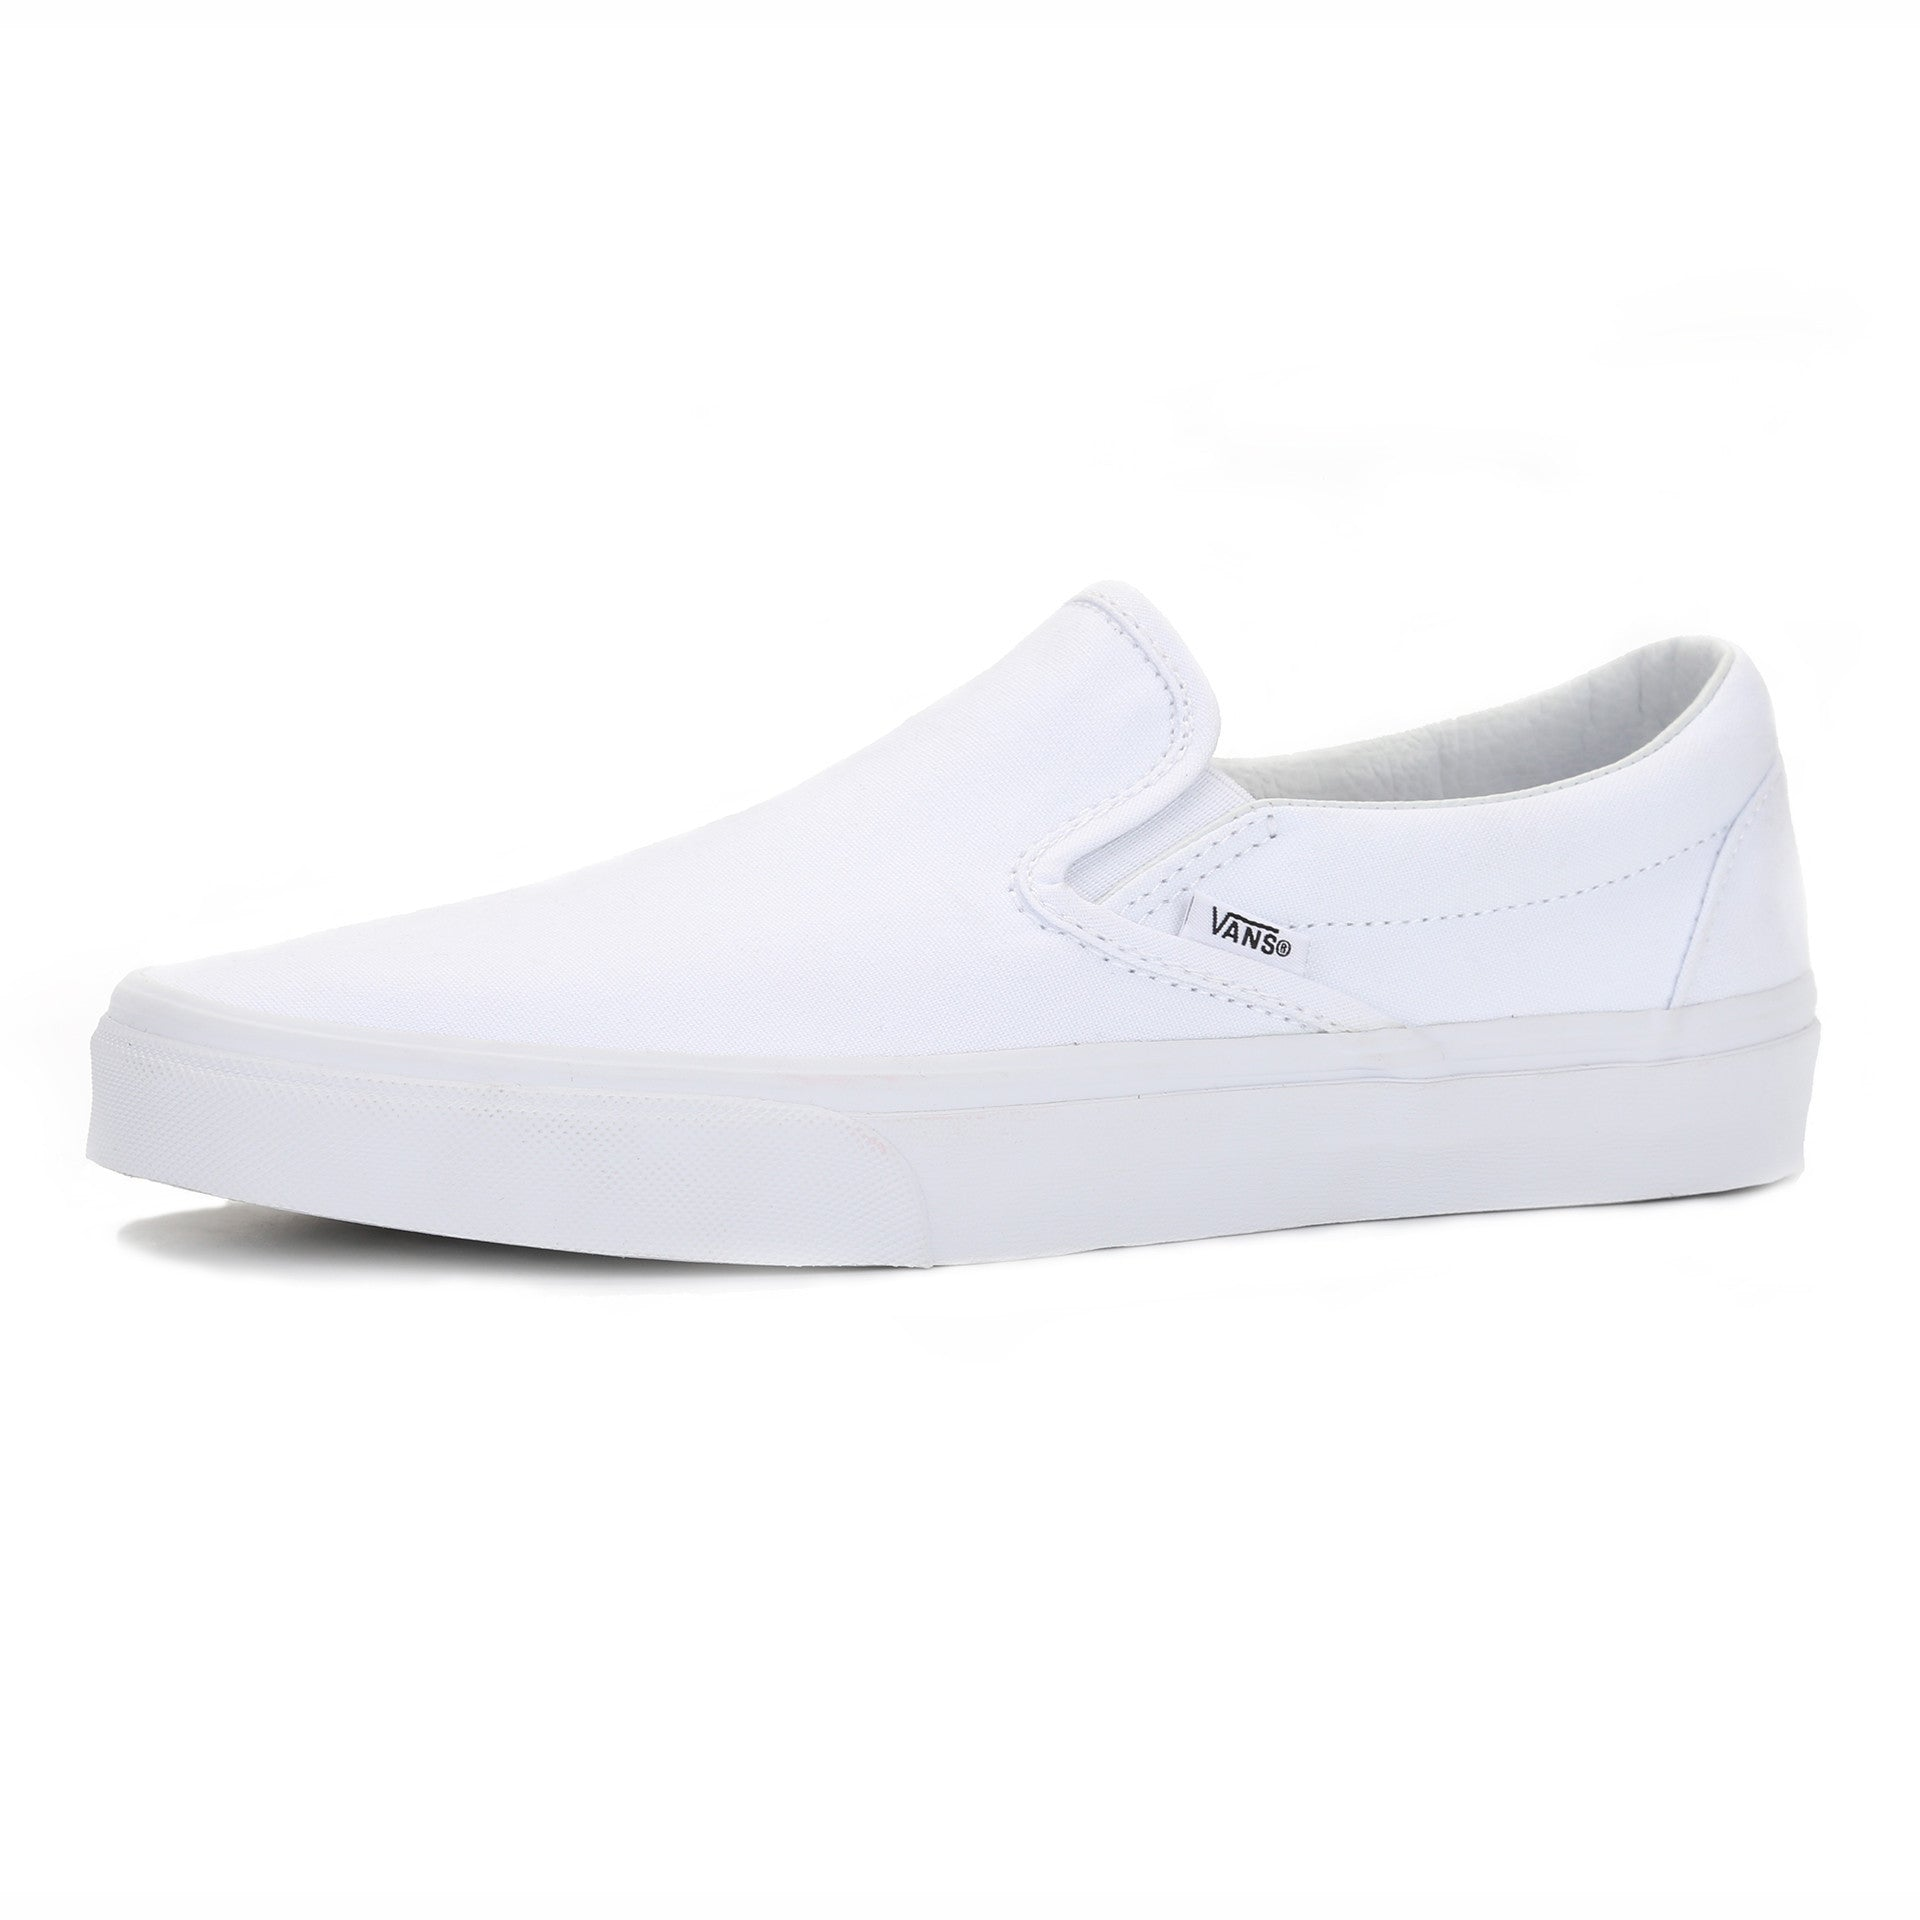 de24c1ae77bb Vans Classic Slip-On - True White - New Star